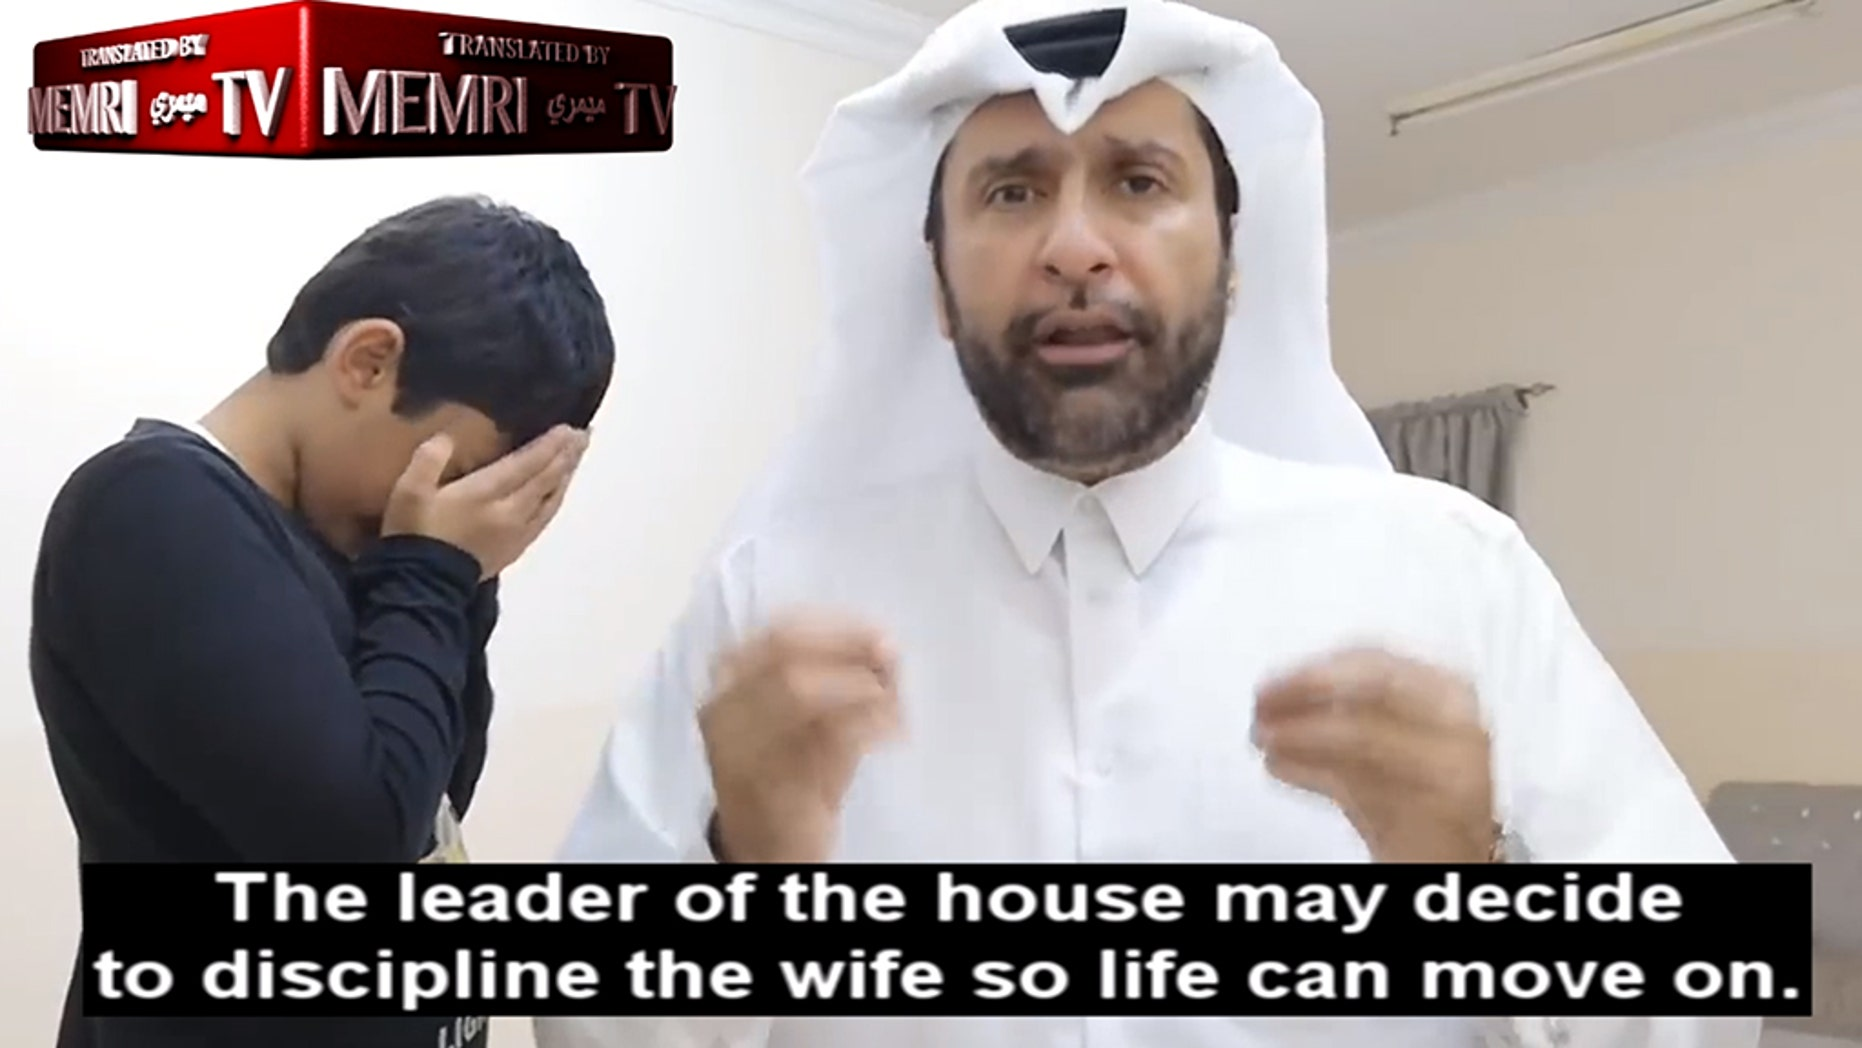 A video has emerged showing a Qatari academic demonstrating how Muslim men should beat their wives.